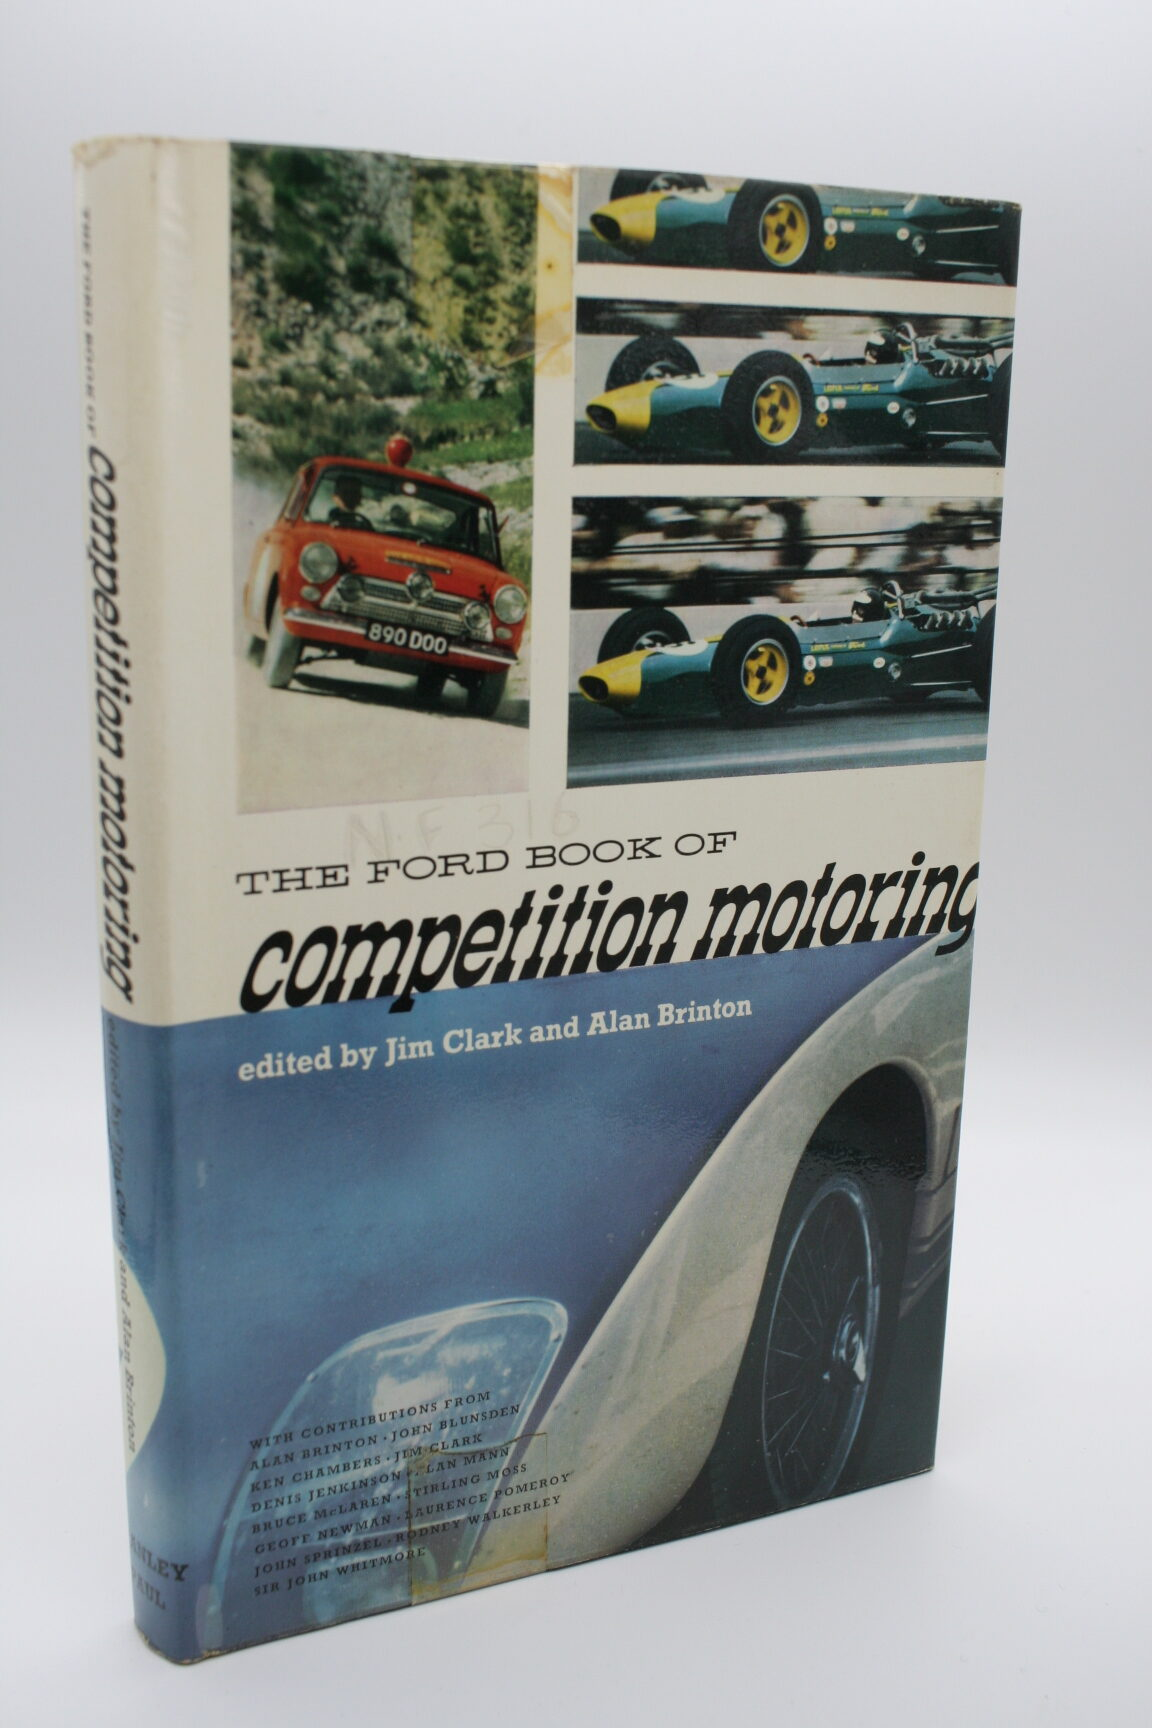 The Ford Book of Competition Motoring - Jim Clark and Alan Brinton